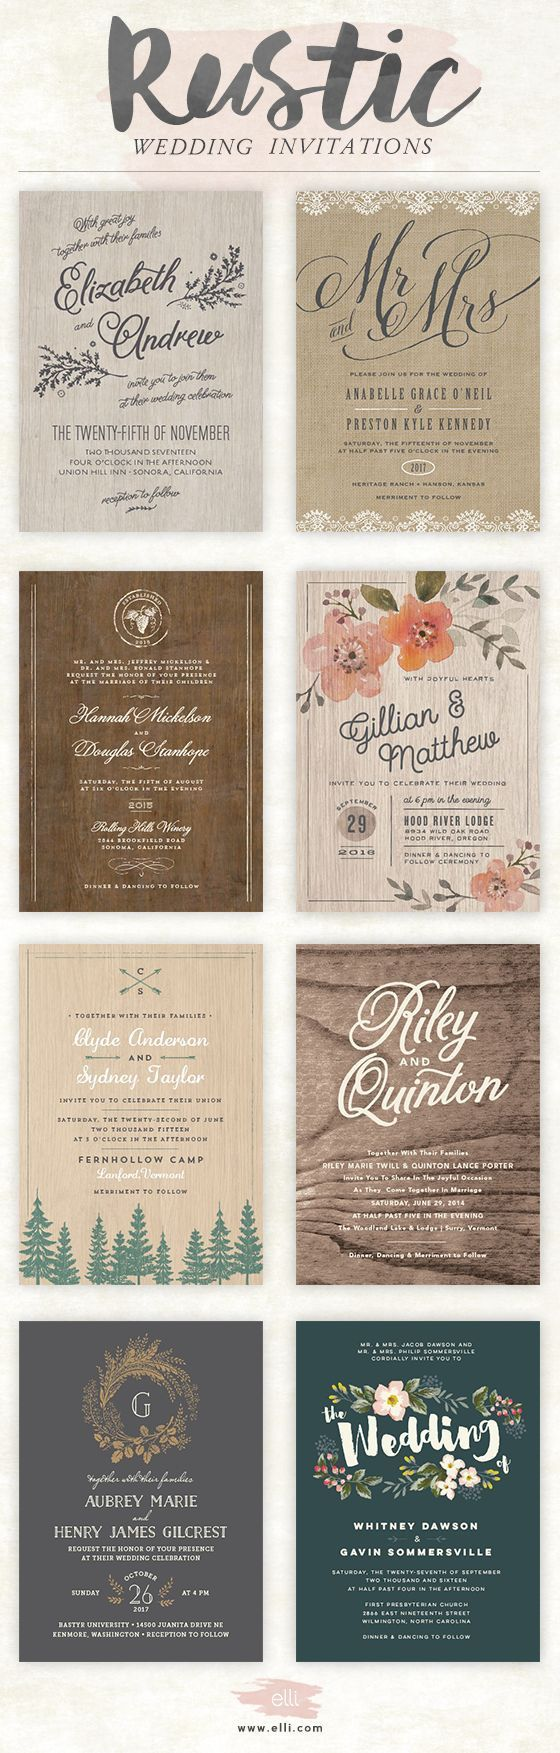 wedding card invitation cards online%0A Rustic wedding invitations    Bella Collina Weddings